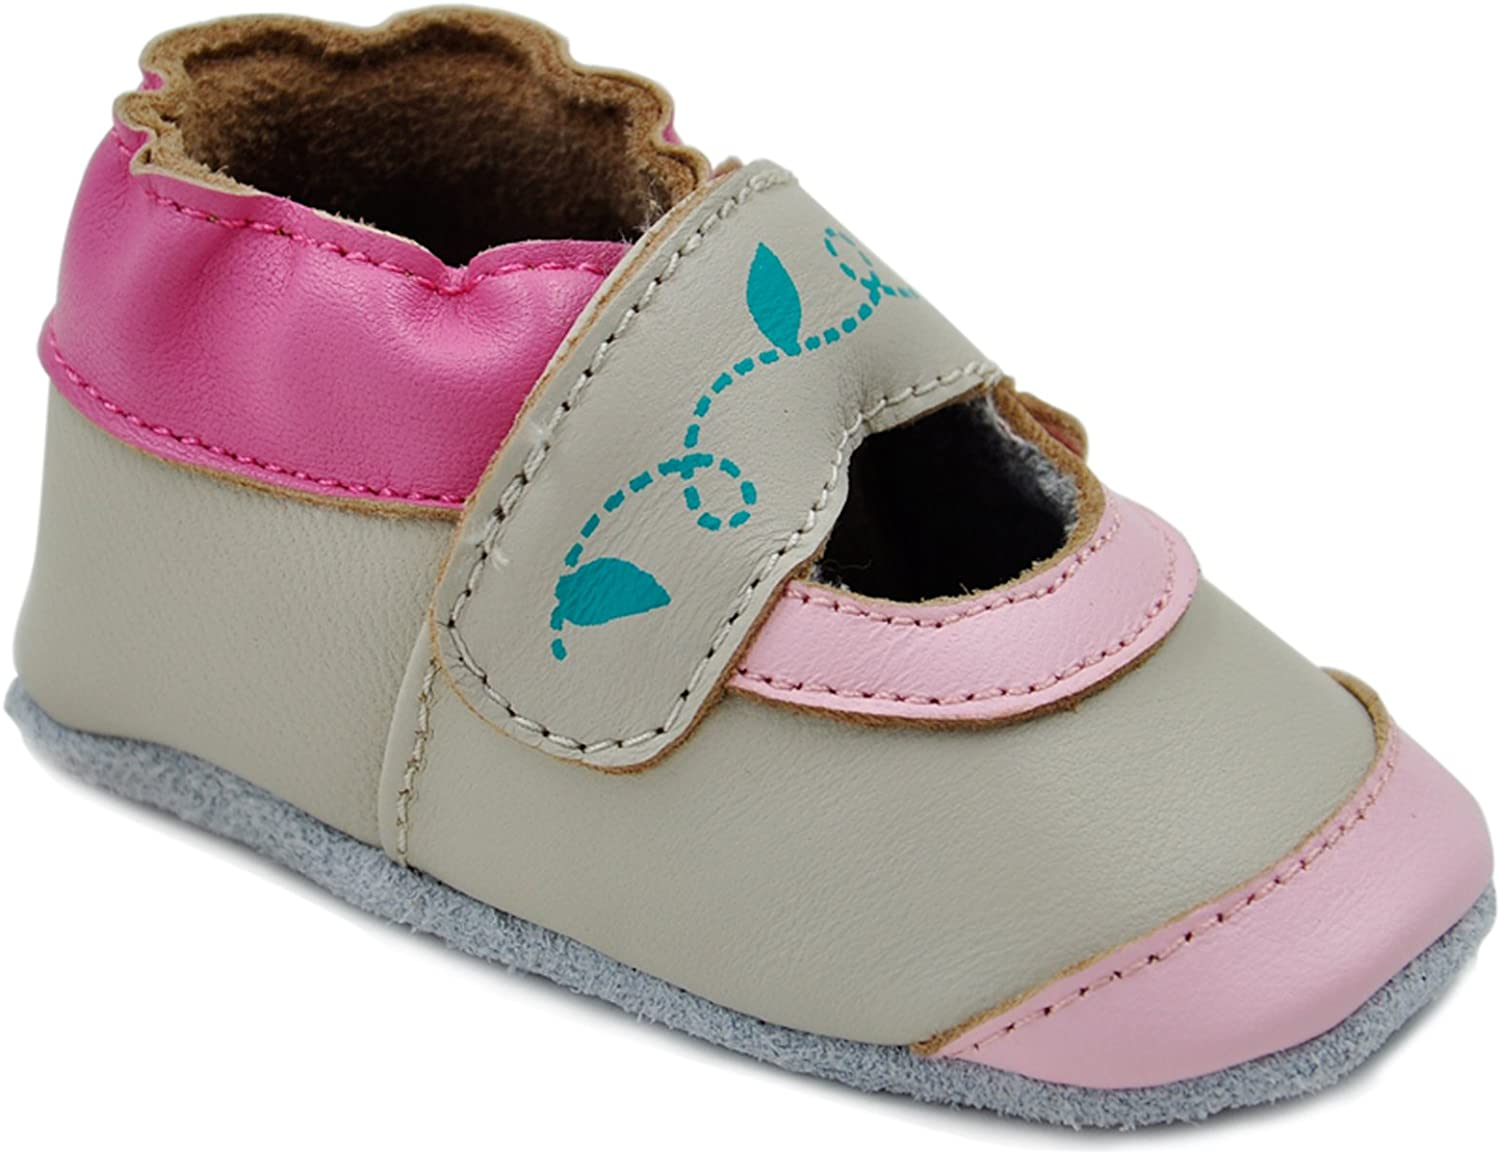 Mary Jane Kimi Kai Baby Girls Lambskin Leather Soft Sole Shoes